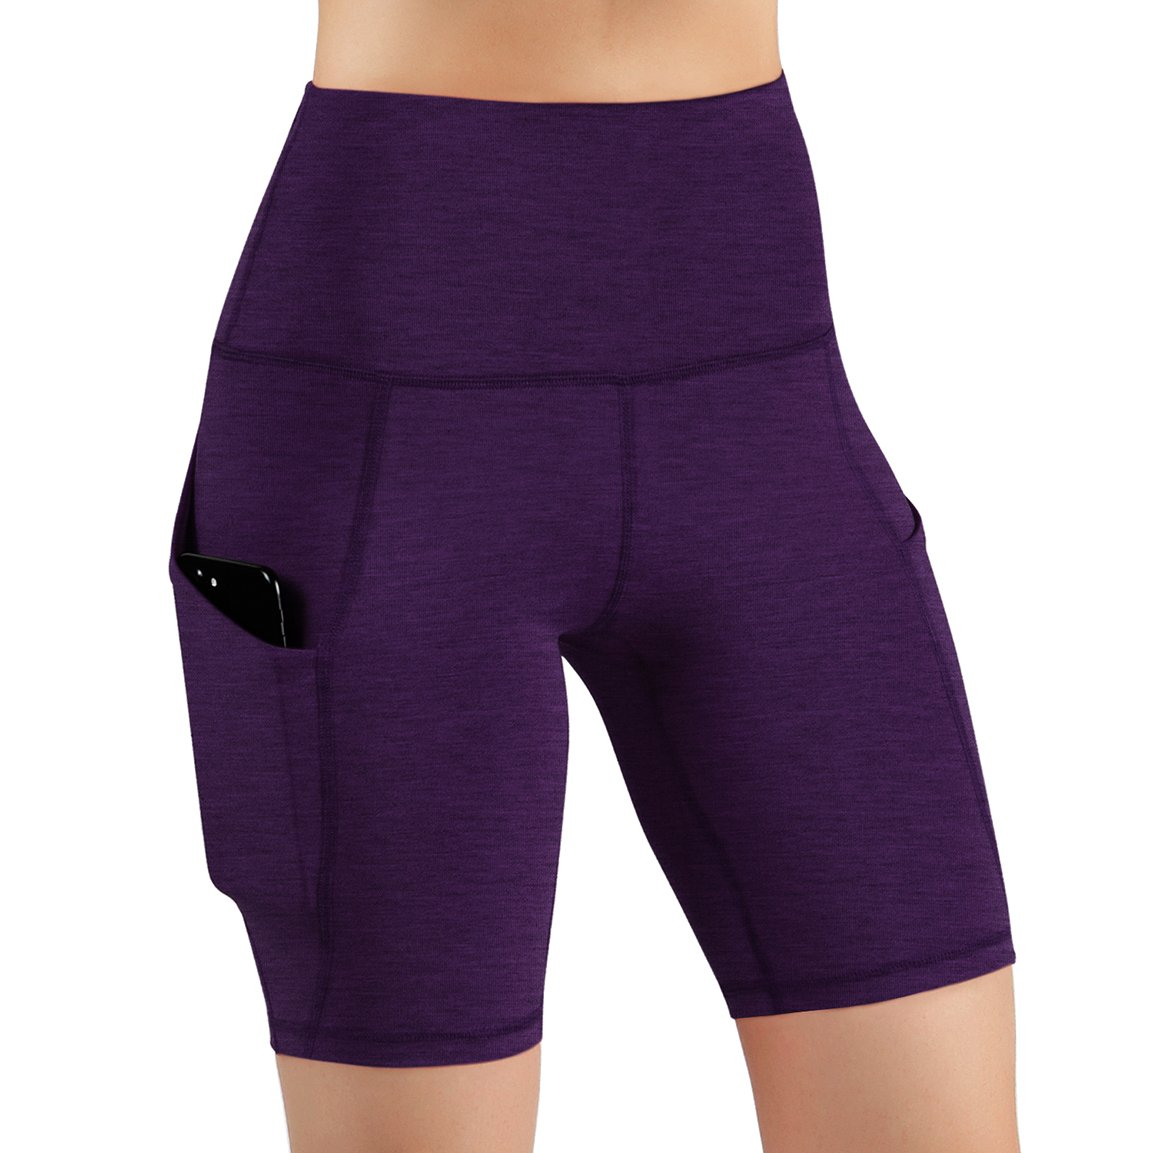 ODODOS High Waist Out Pocket Yoga Short Tummy Control Workout Running Athletic Non See-Through Yoga Shorts,DeepPurple,Medium by ODODOS